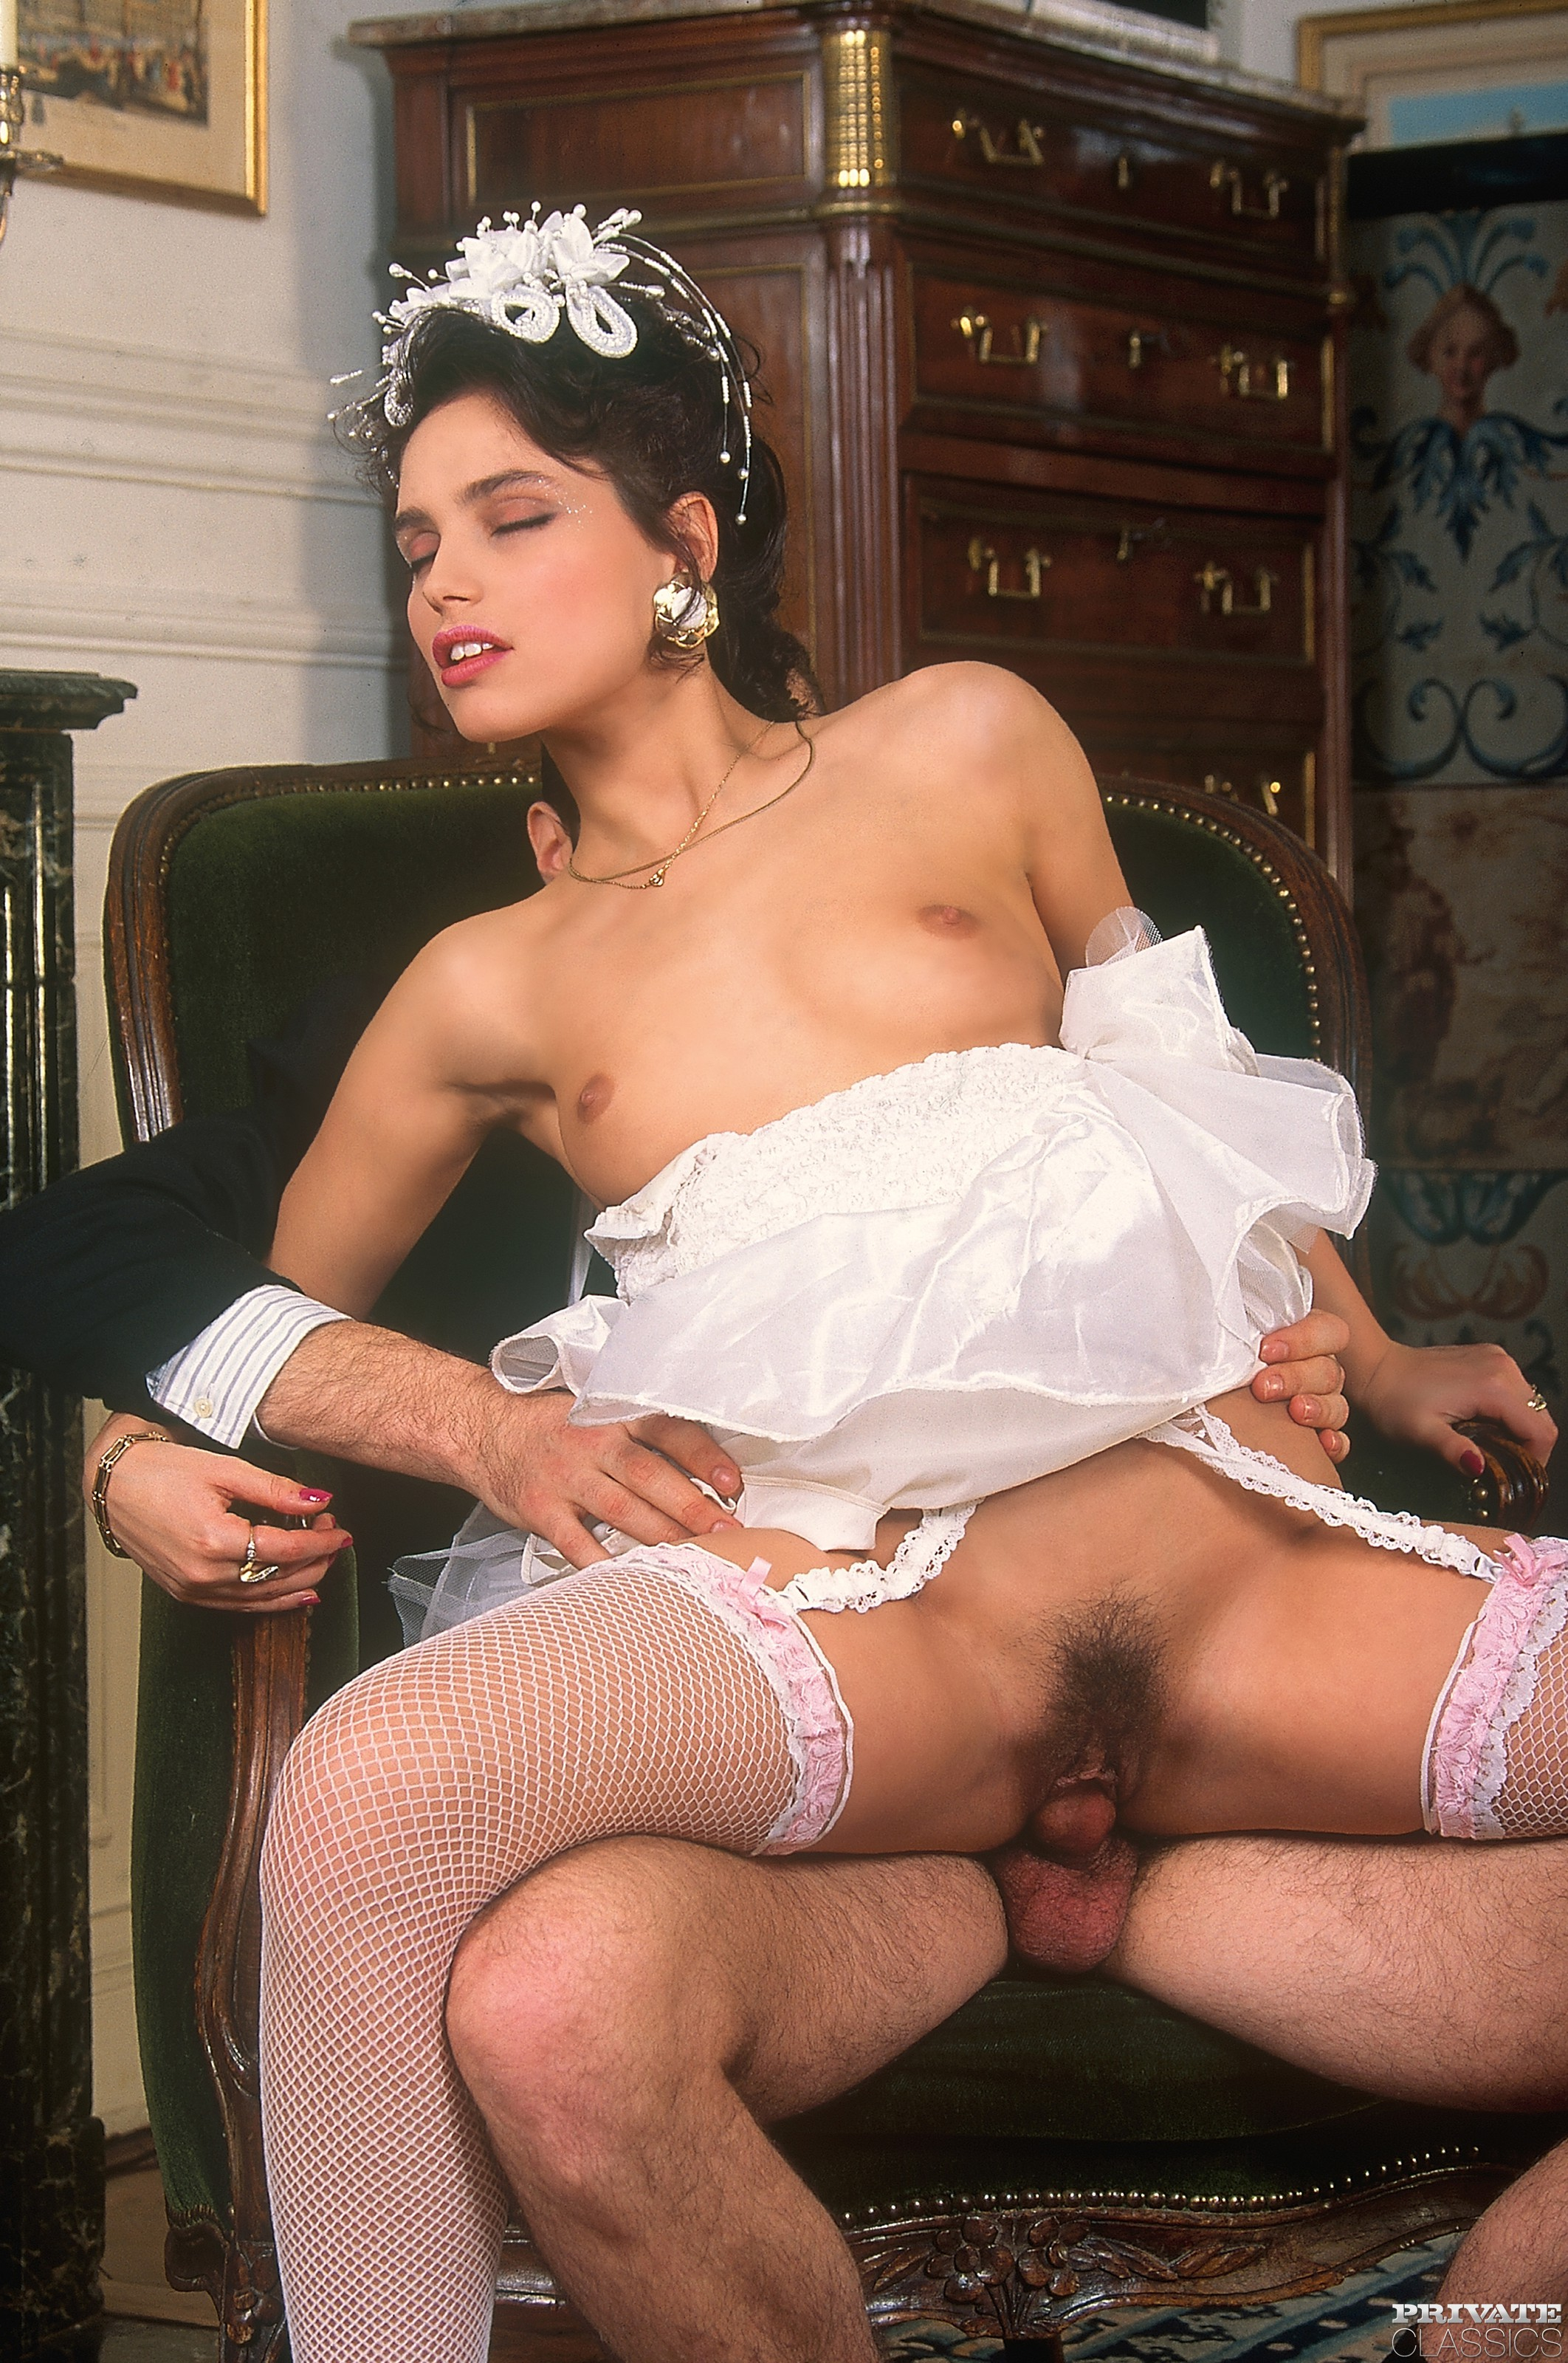 All about gloria leonard 1978 dped mfm scene 3